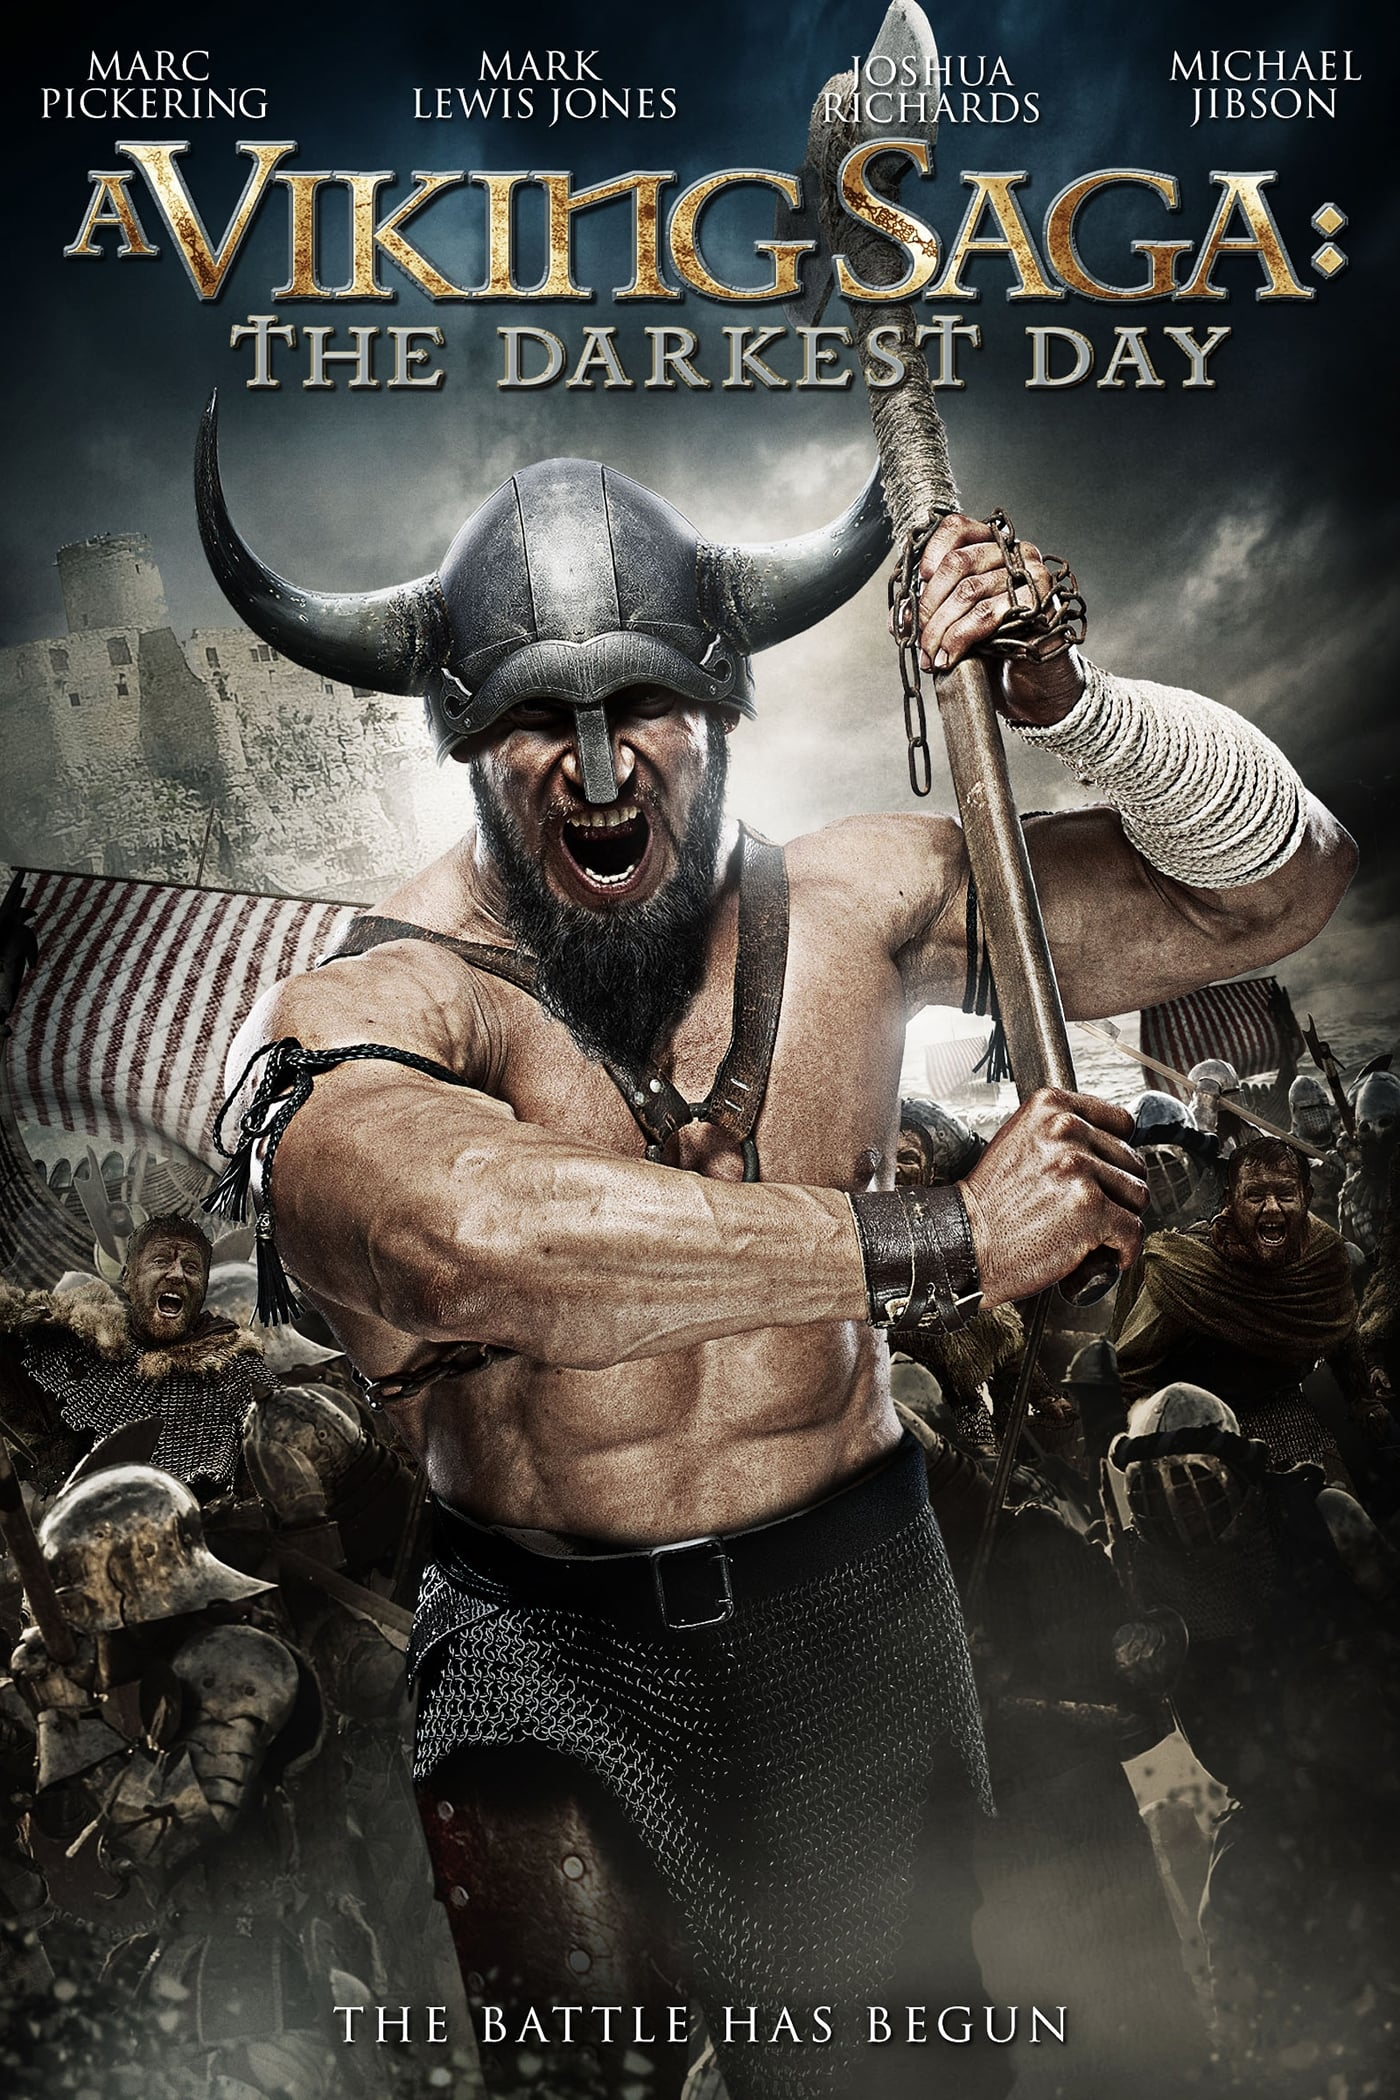 A Viking Saga: The Darkest Day on FREECABLE TV